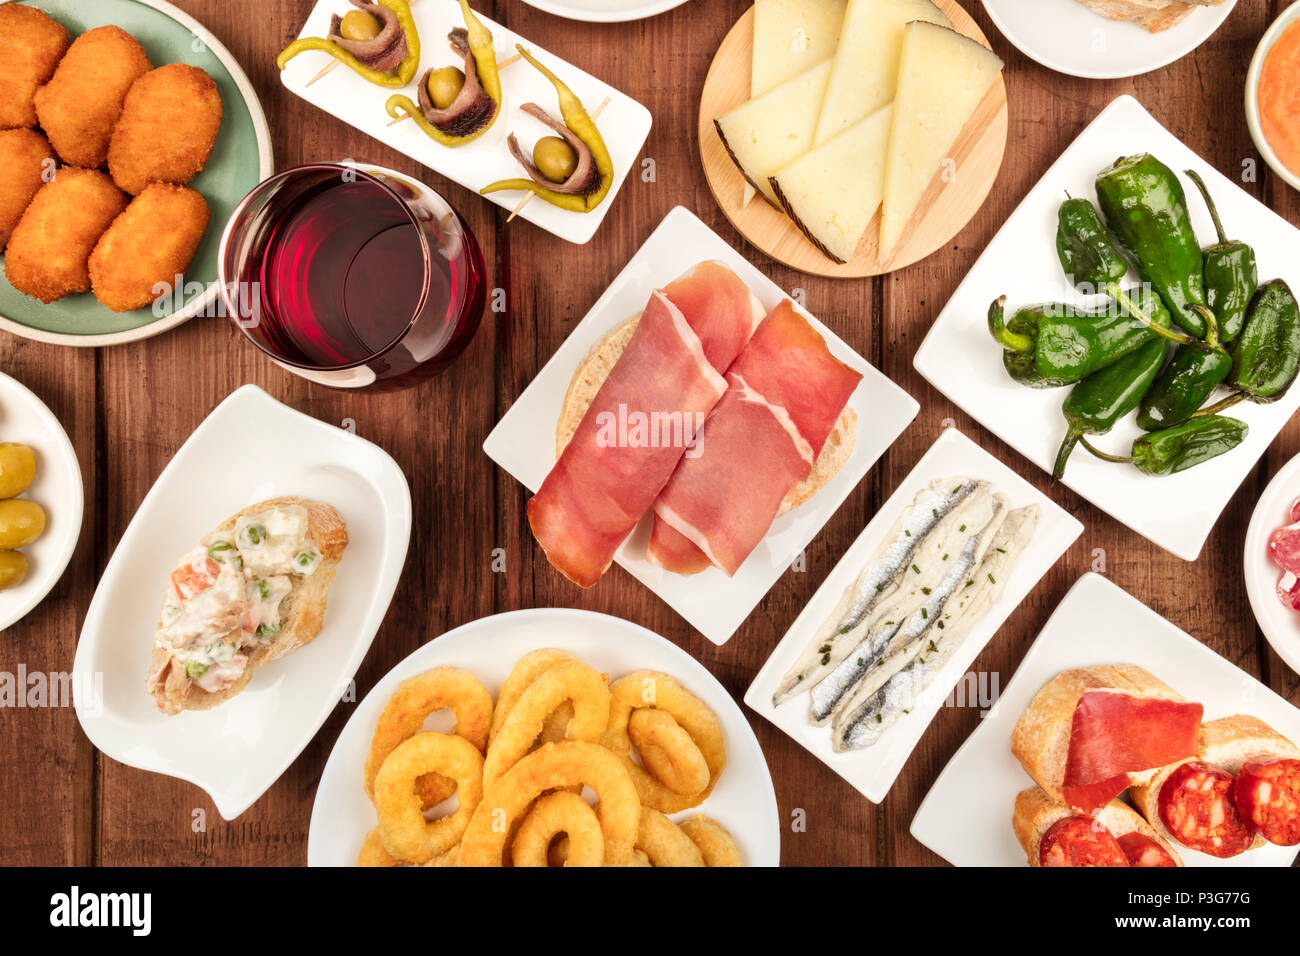 The food of Spain. An overhead photo of various Spanish tapas, shot from above on a dark rustic texture. Jamon, cheese, wine, olives, croquettes, cala - Stock Image